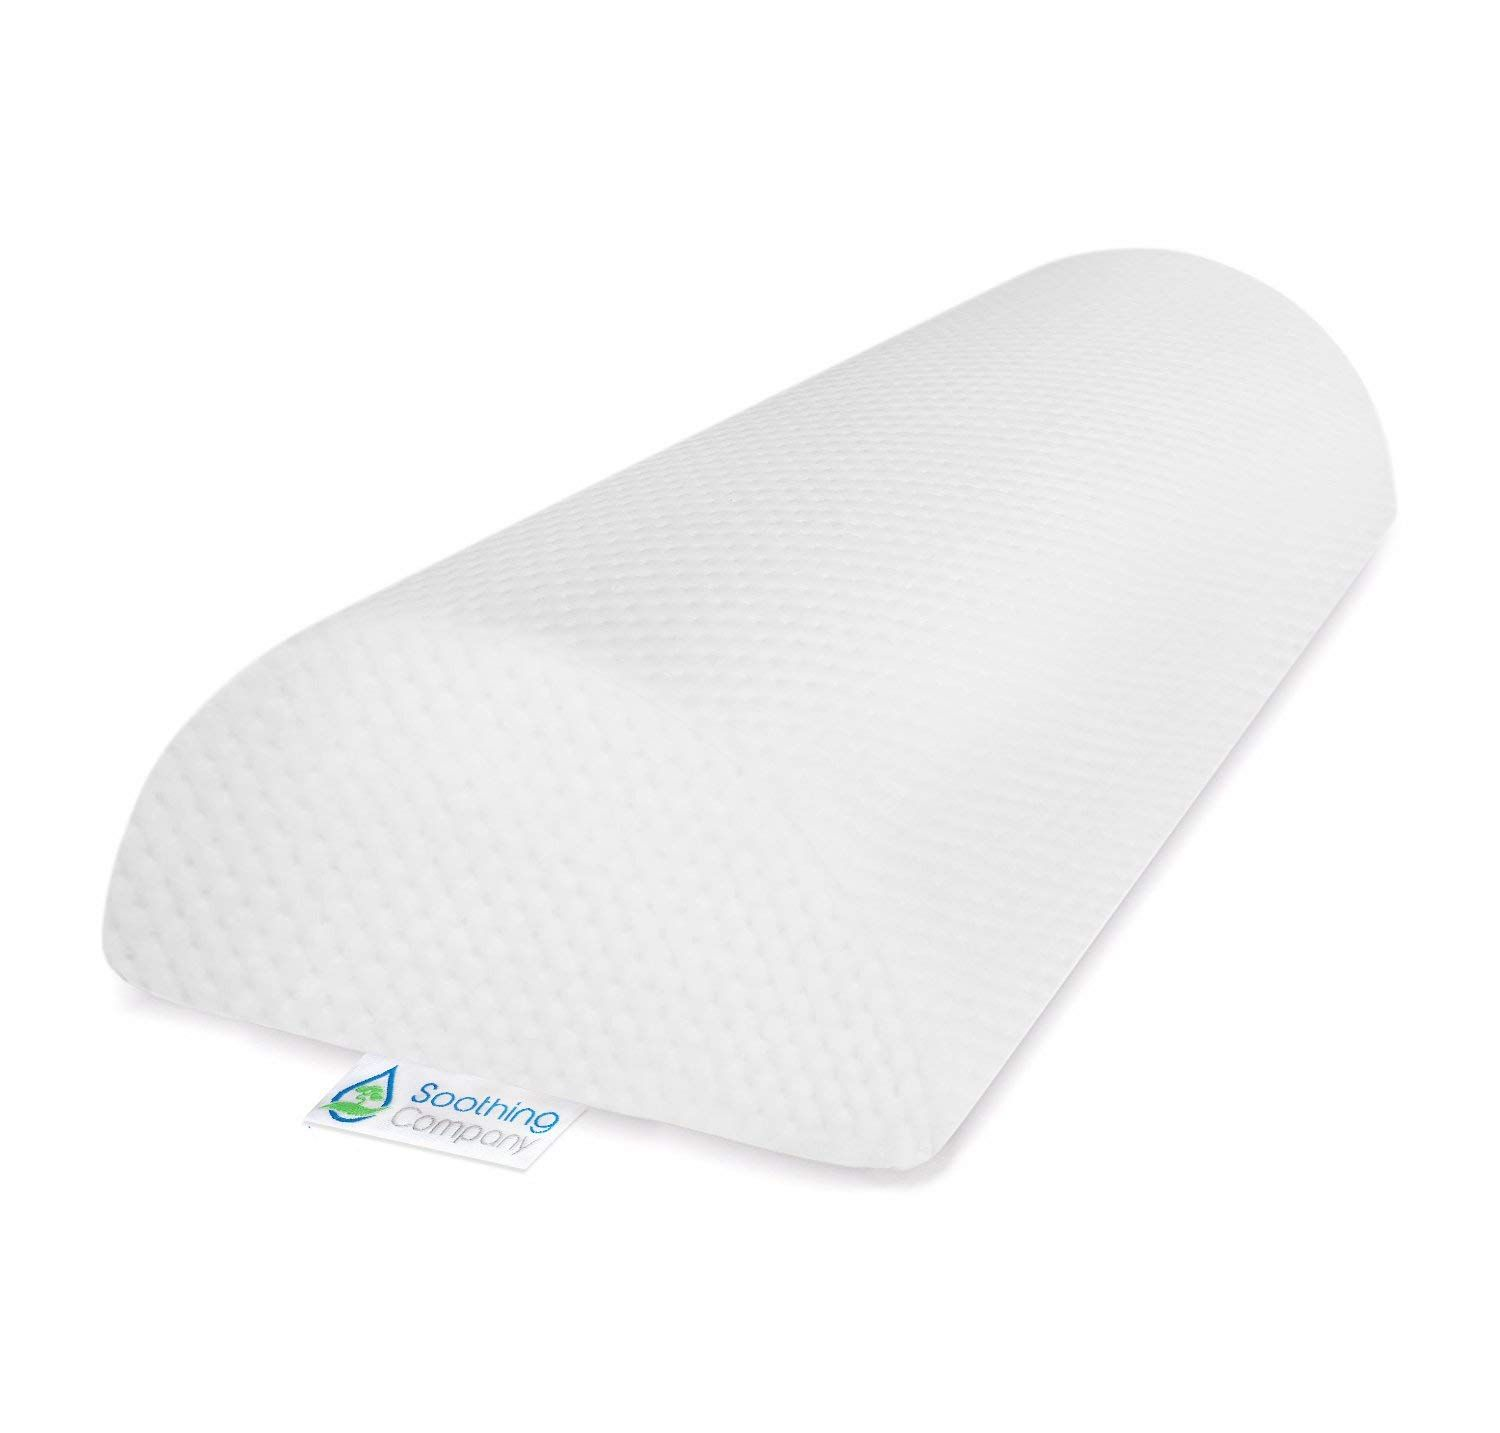 Half Moon Memory Foam Pillow Cushion